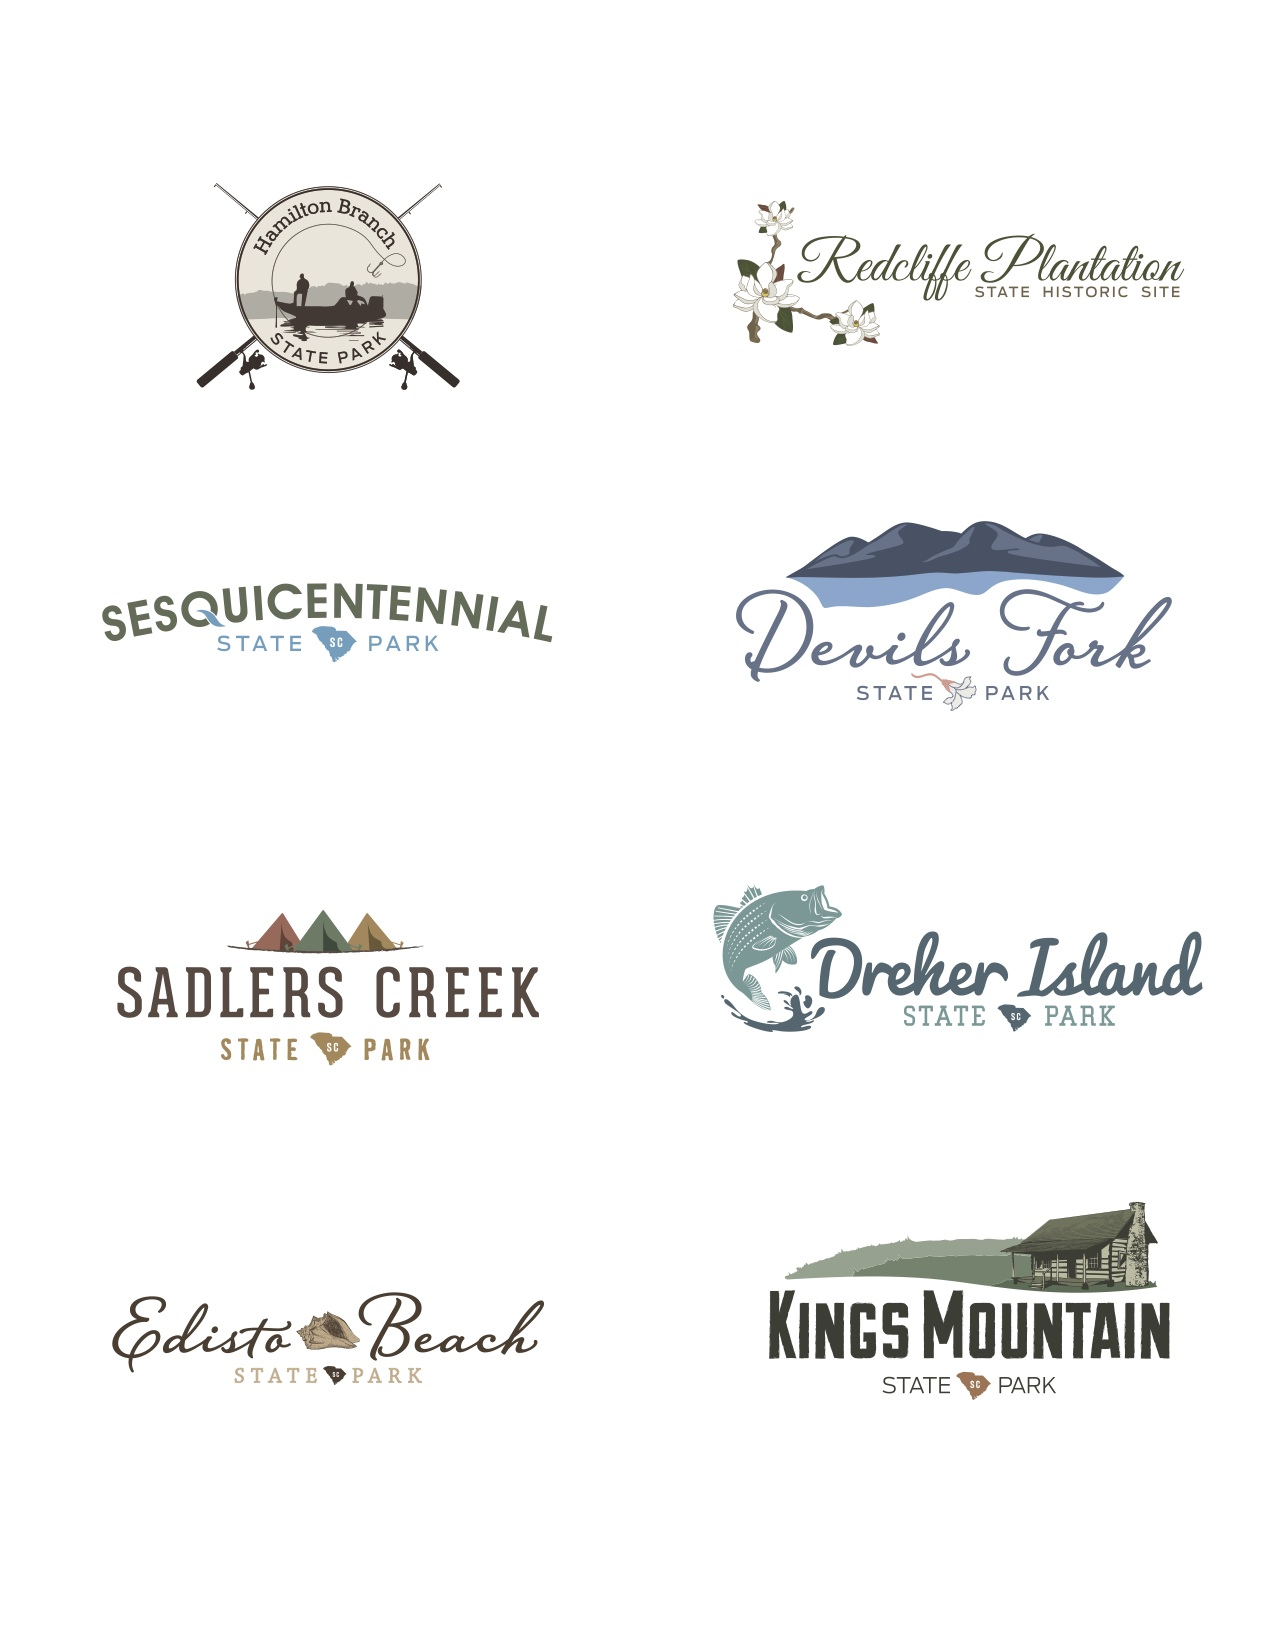 hight resolution of  some sort of imagery related to a magnolia tree famous in the region all of these logos are now the official identity of those specific state parks